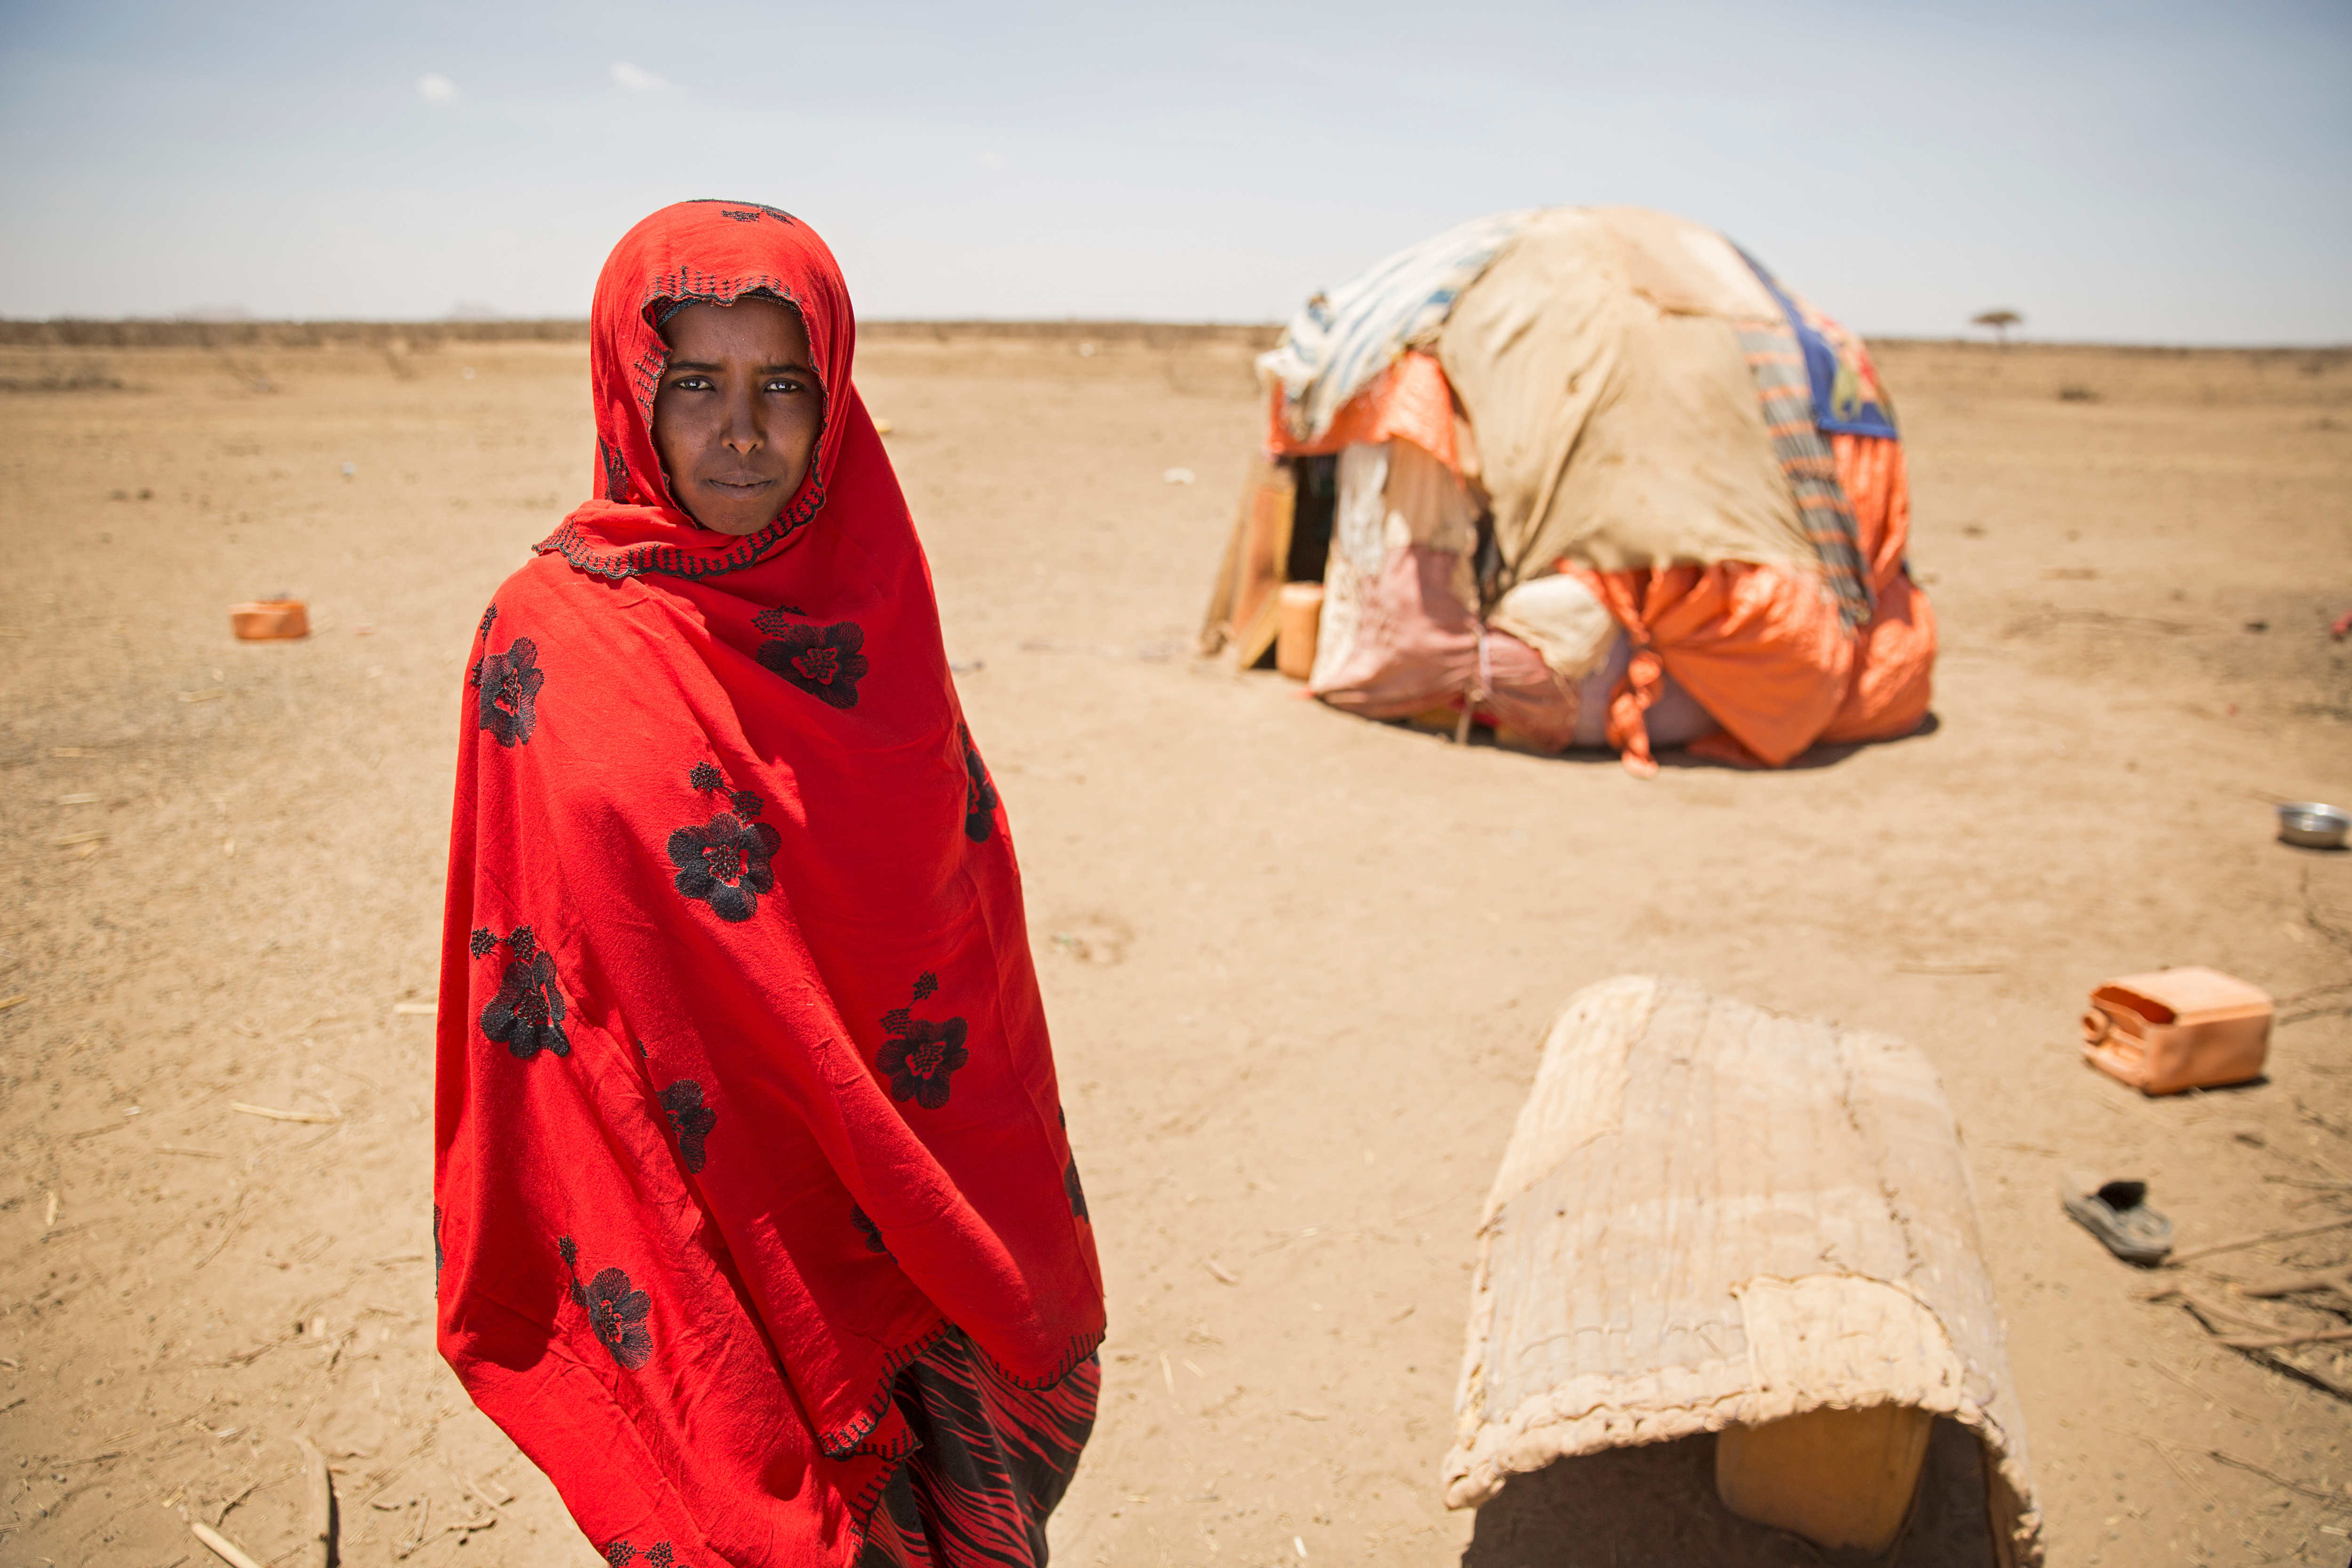 Idil Abduh, a mother of three, who left her home in Somalia in search of pasture for her livestock